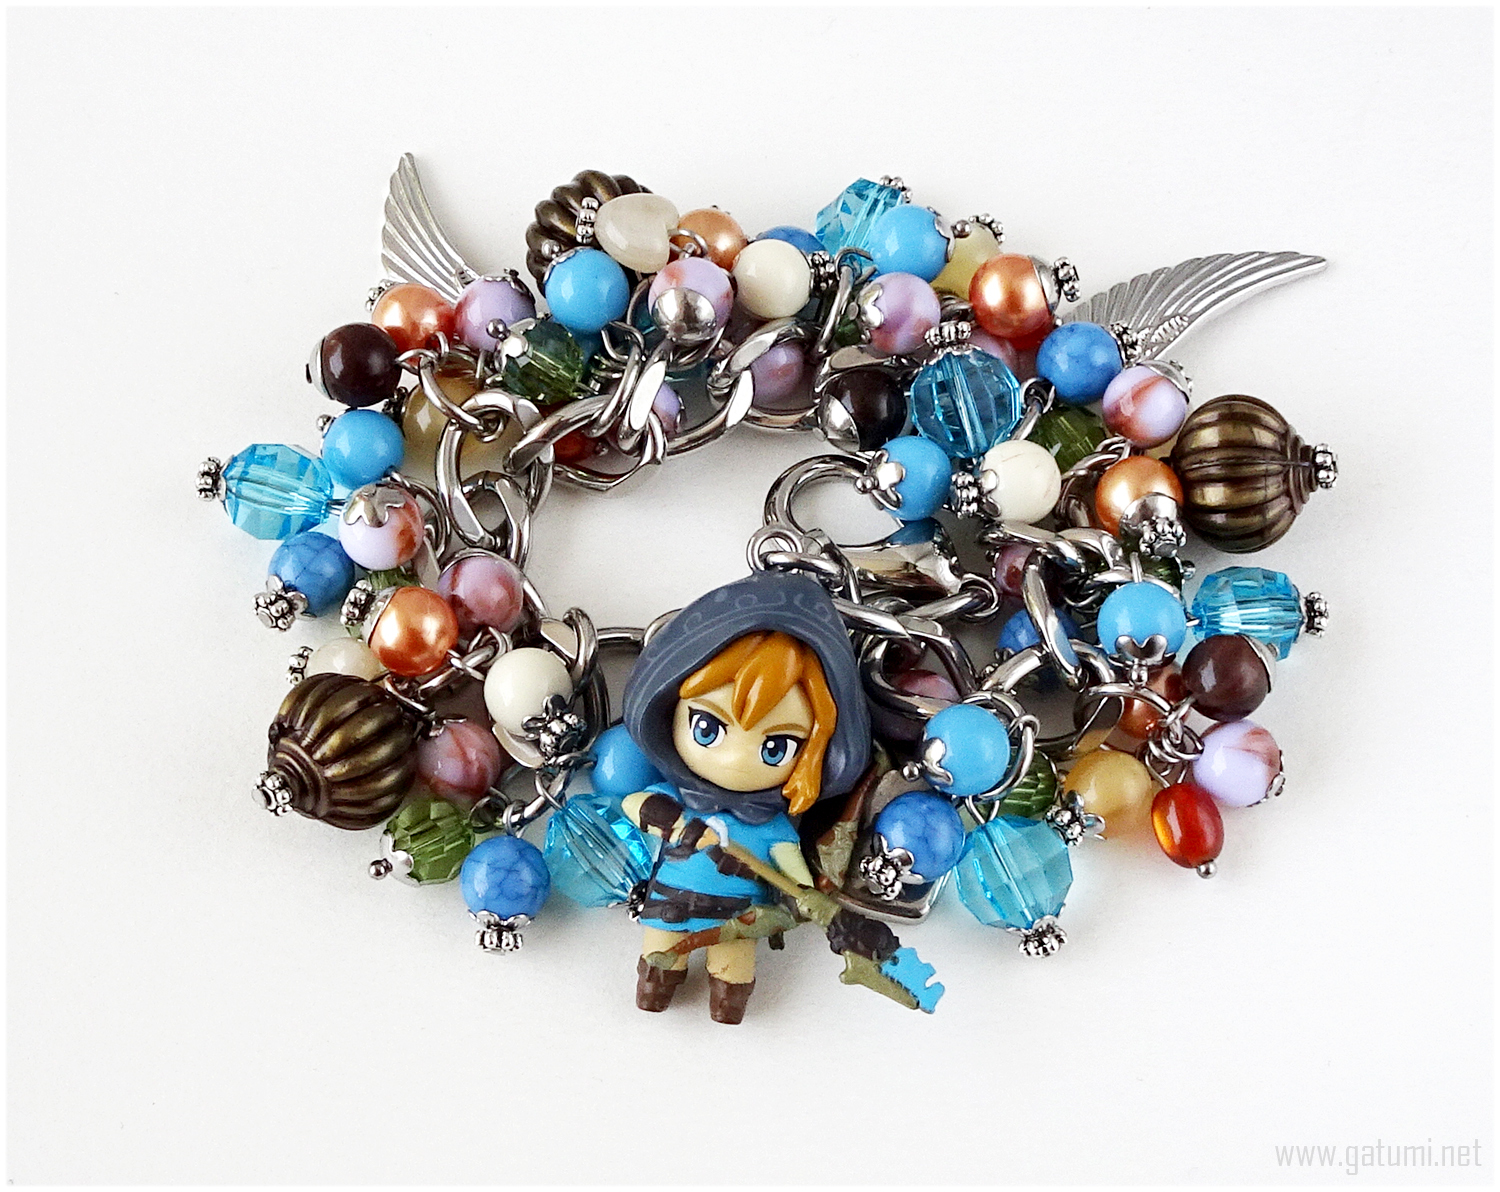 Primary image for Legend of Zelda Breath of the Wild Charm Bracelet, Steel Chain, Gamer Gifts